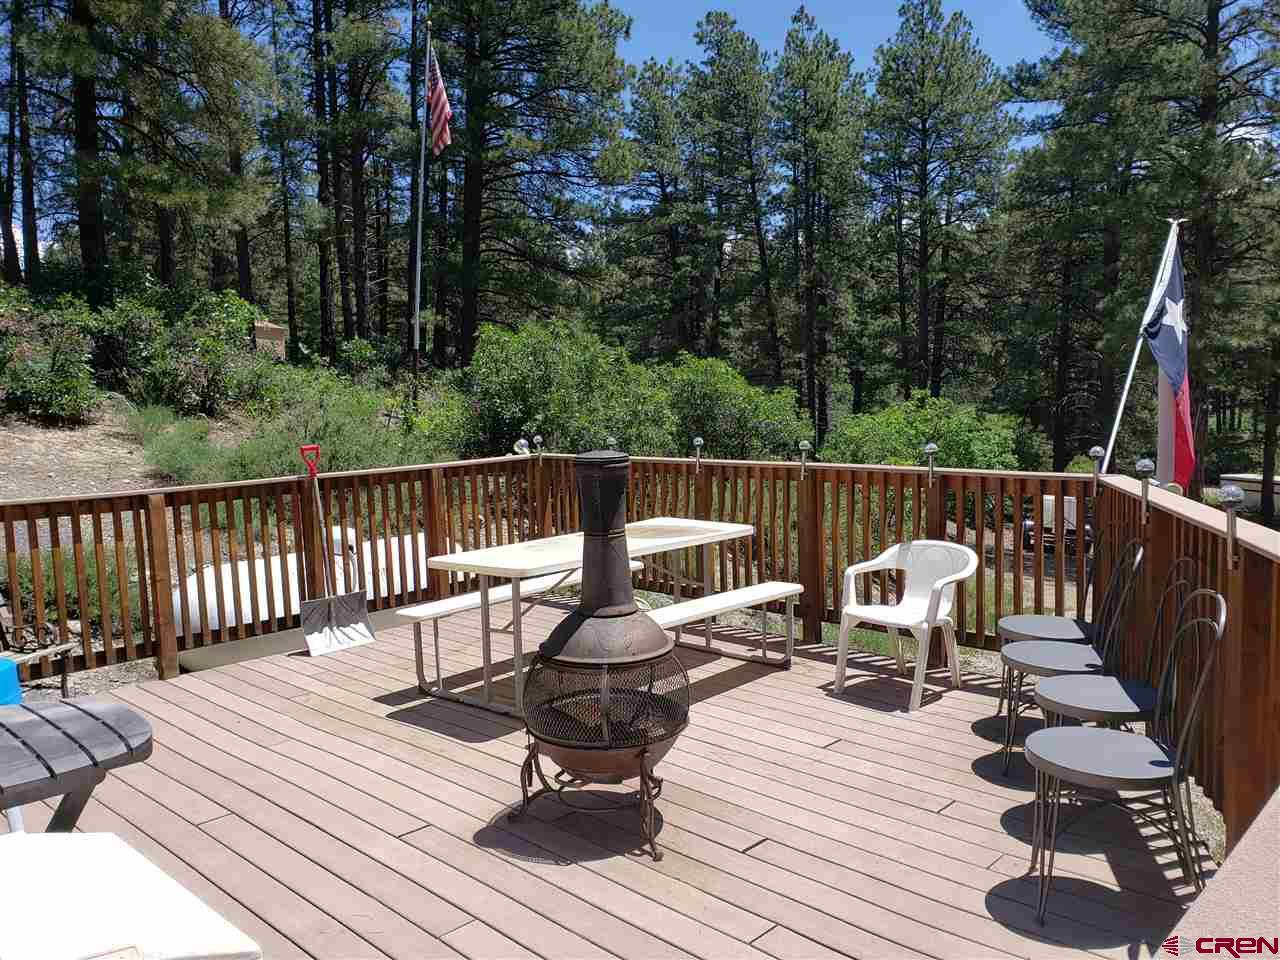 MLS# 768680 - 4 - 38 Spruce Circle, Pagosa Springs, CO 81147